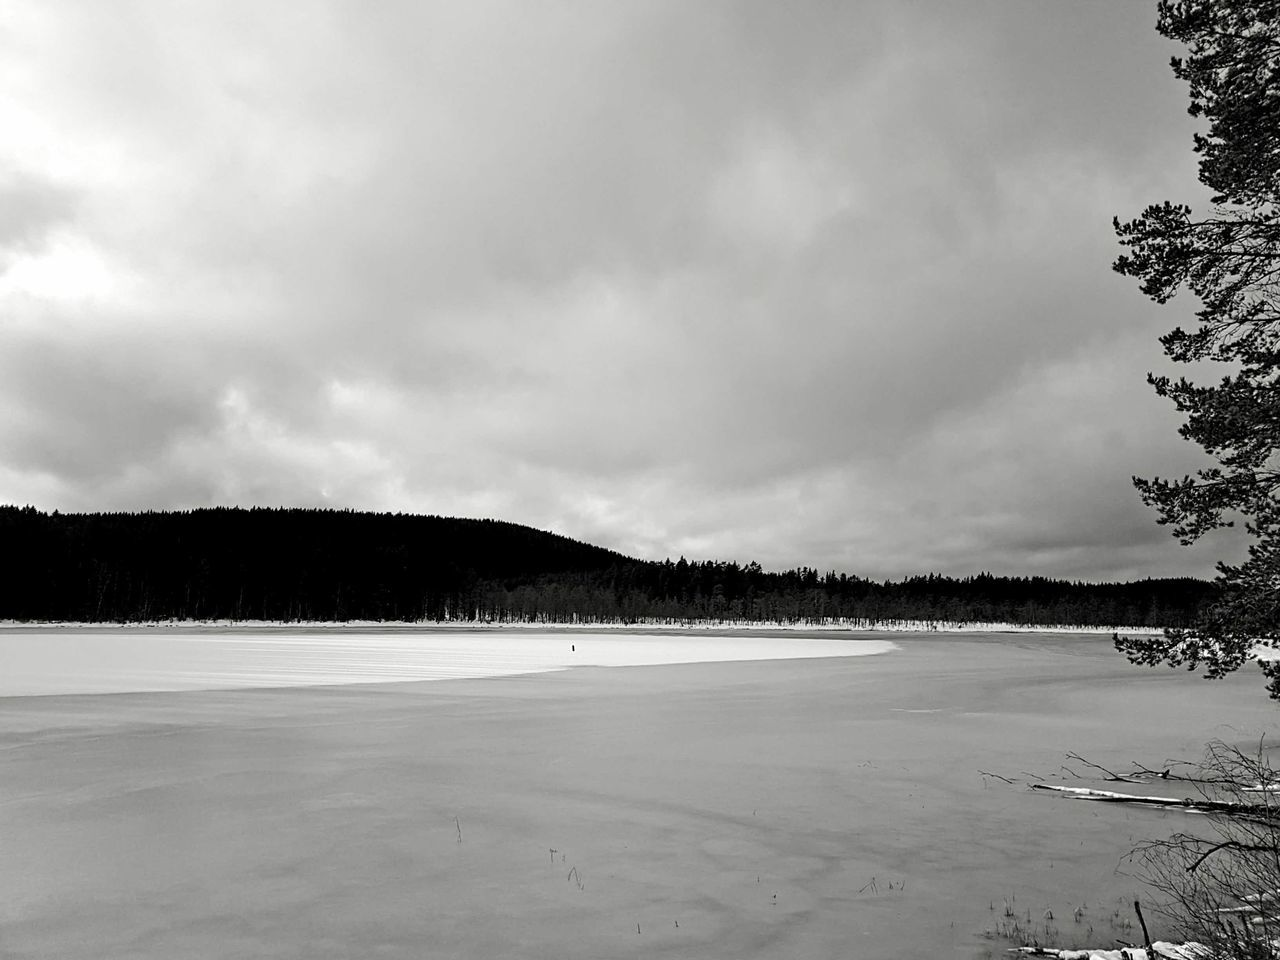 Landscape Beauty In Nature Scenics Nature Outdoors Sky Tree Winter Snow Black And White Monochrome Blackandwhite Ice Lake Miles Away Welcome To Black The Great Outdoors - 2017 EyeEm Awards